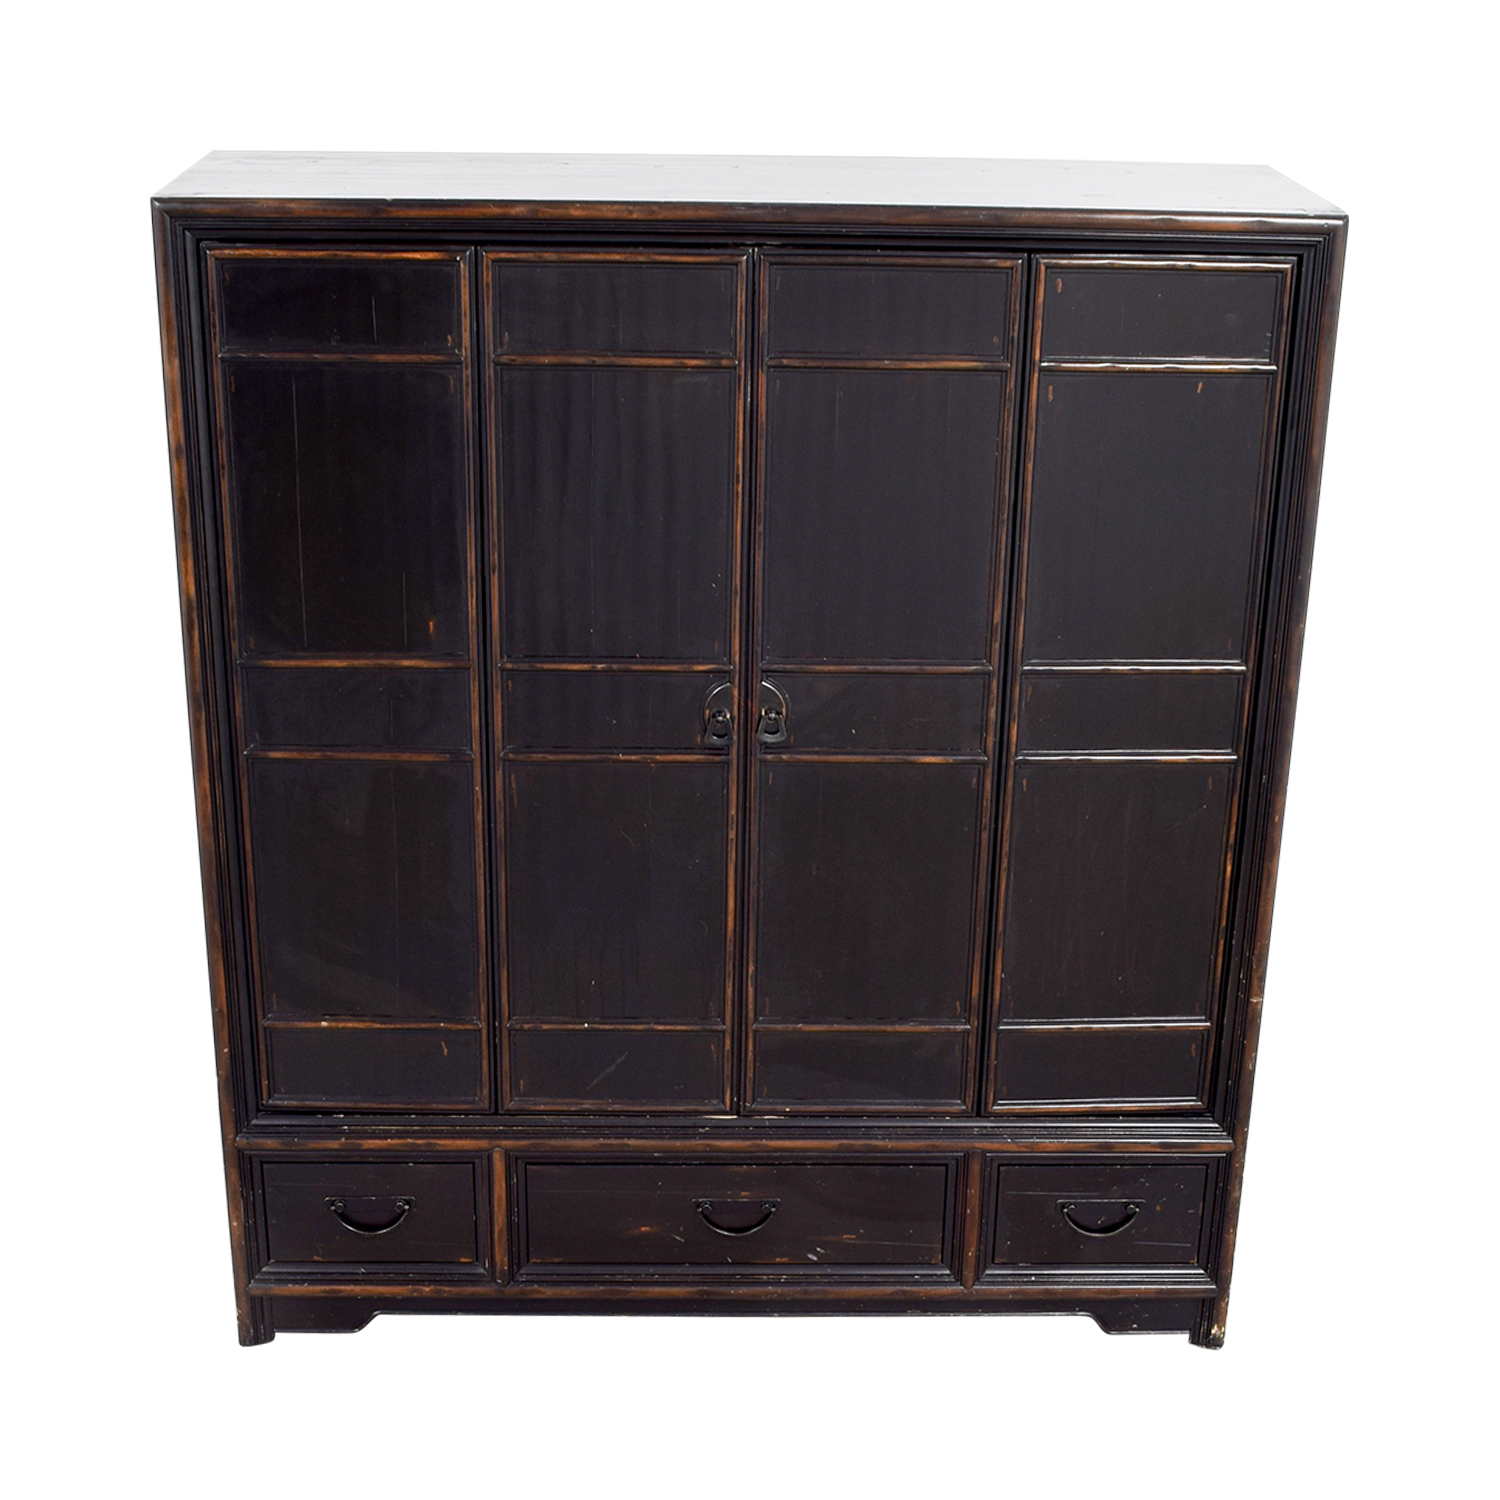 Ethan Allen Ethan Allen Wood Media Cabinet Storage